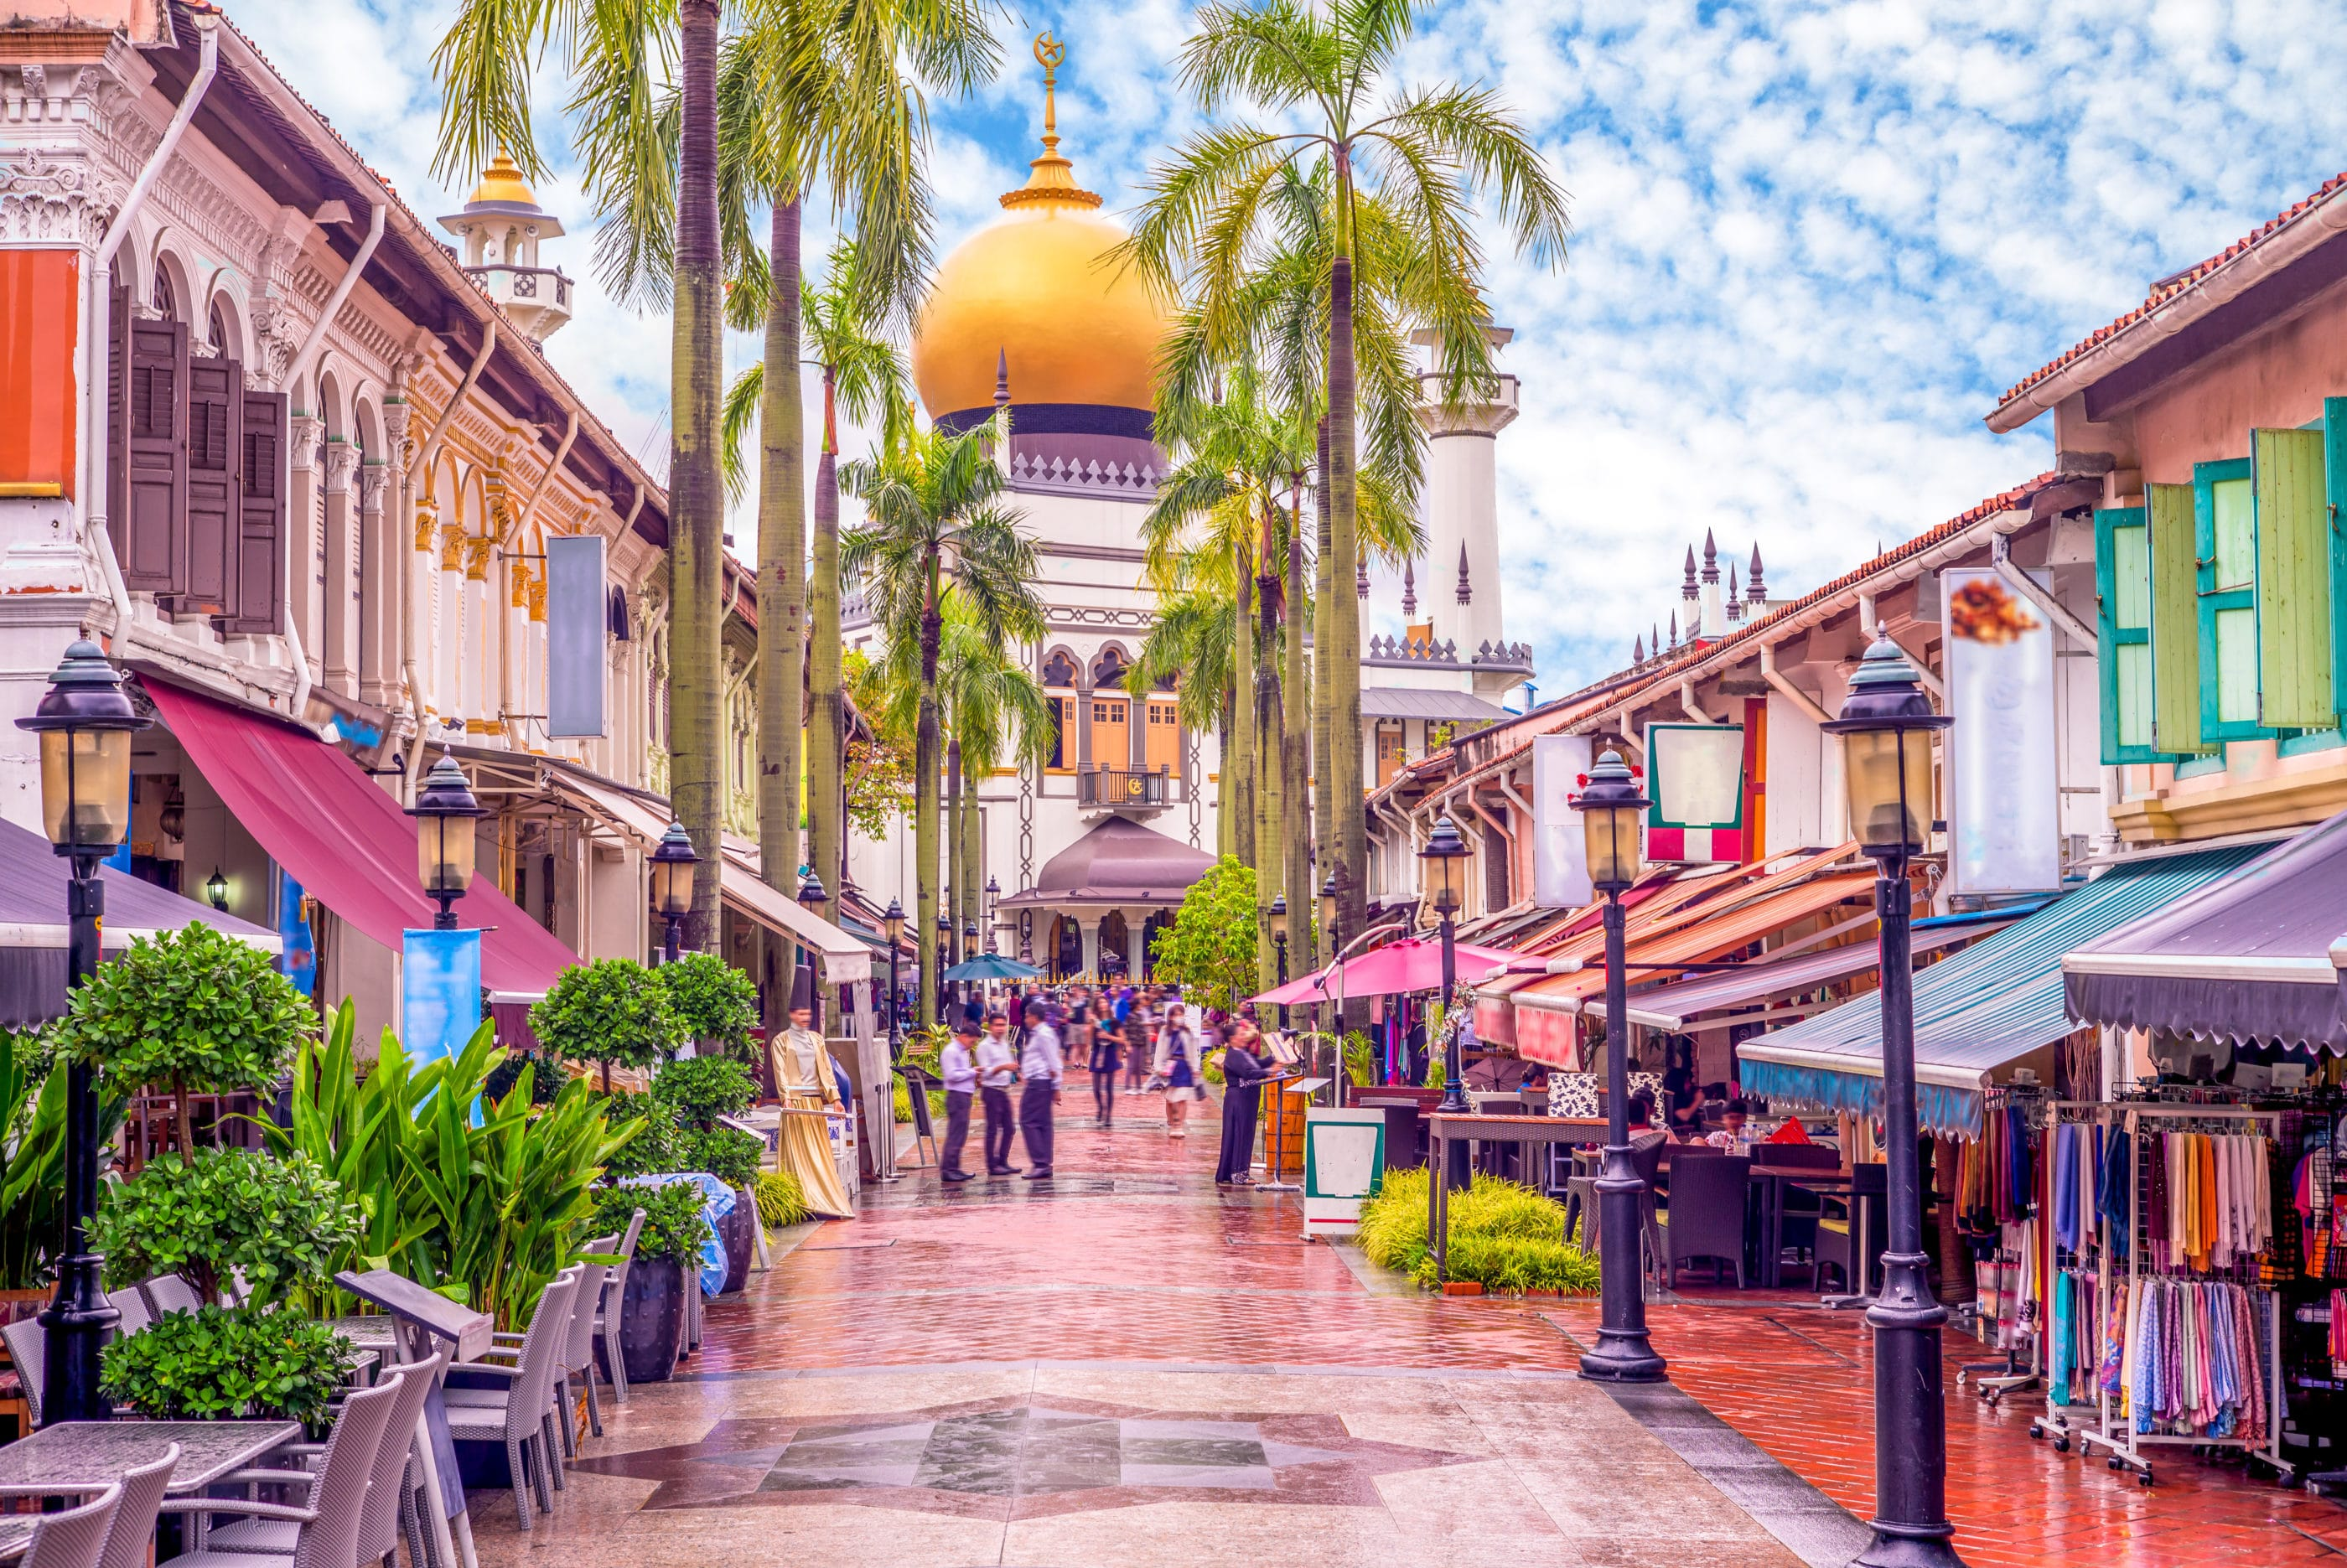 Explore Singapore's ethnic neighborhoods like Kampong Glam